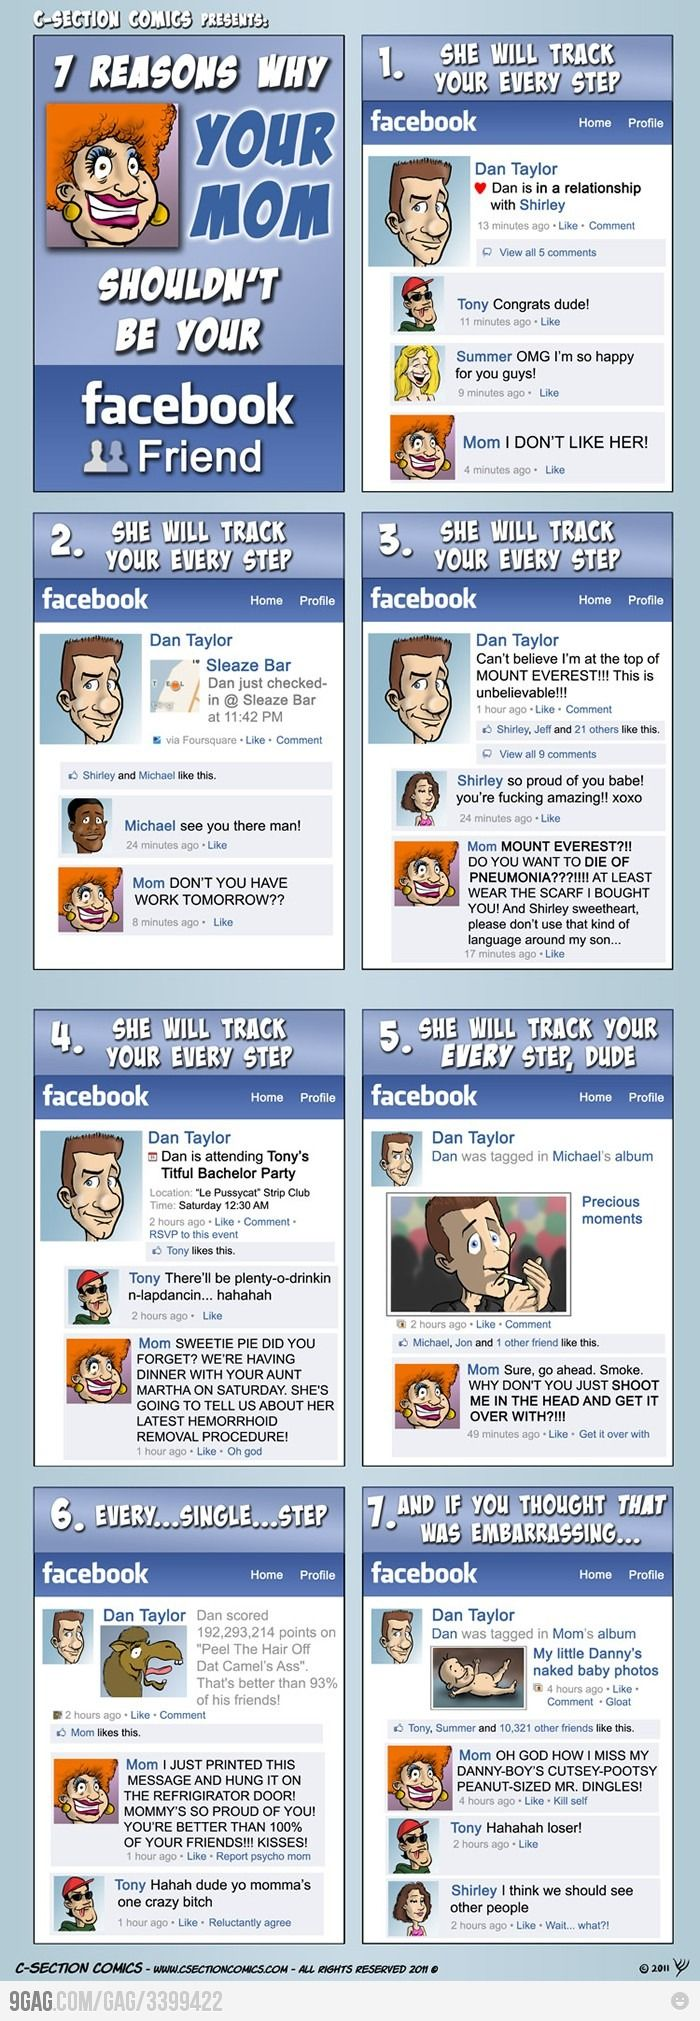 7 Reasons Why Your Mom Shouldn't Be Your Facebook Friend